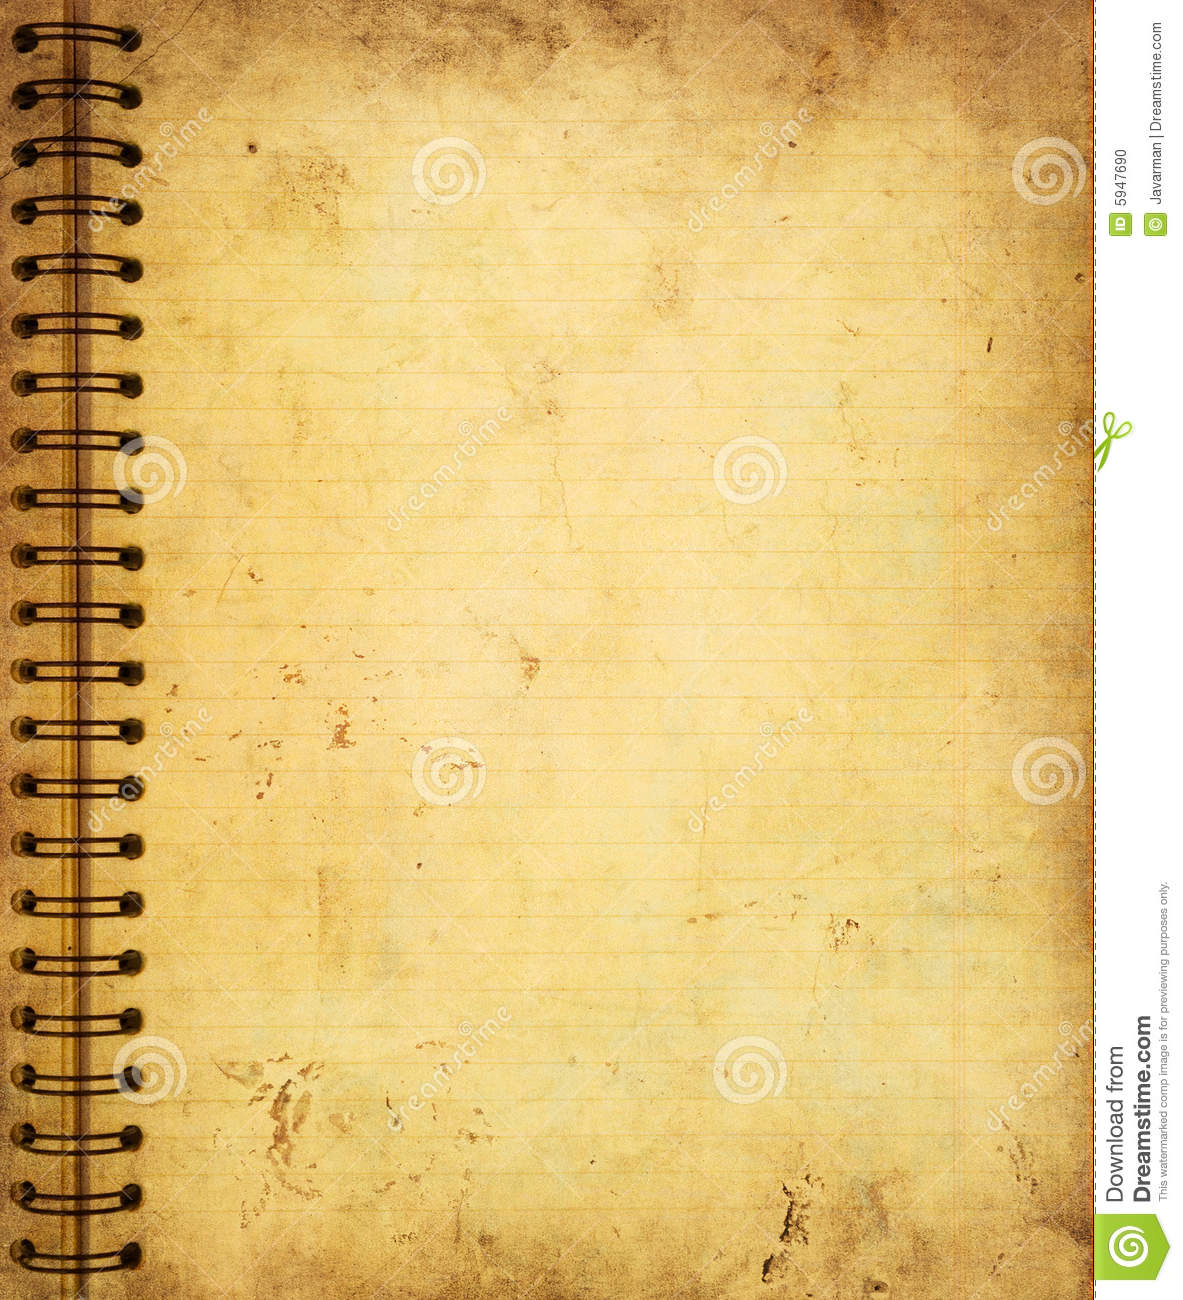 page from old grunge notebook stock photo